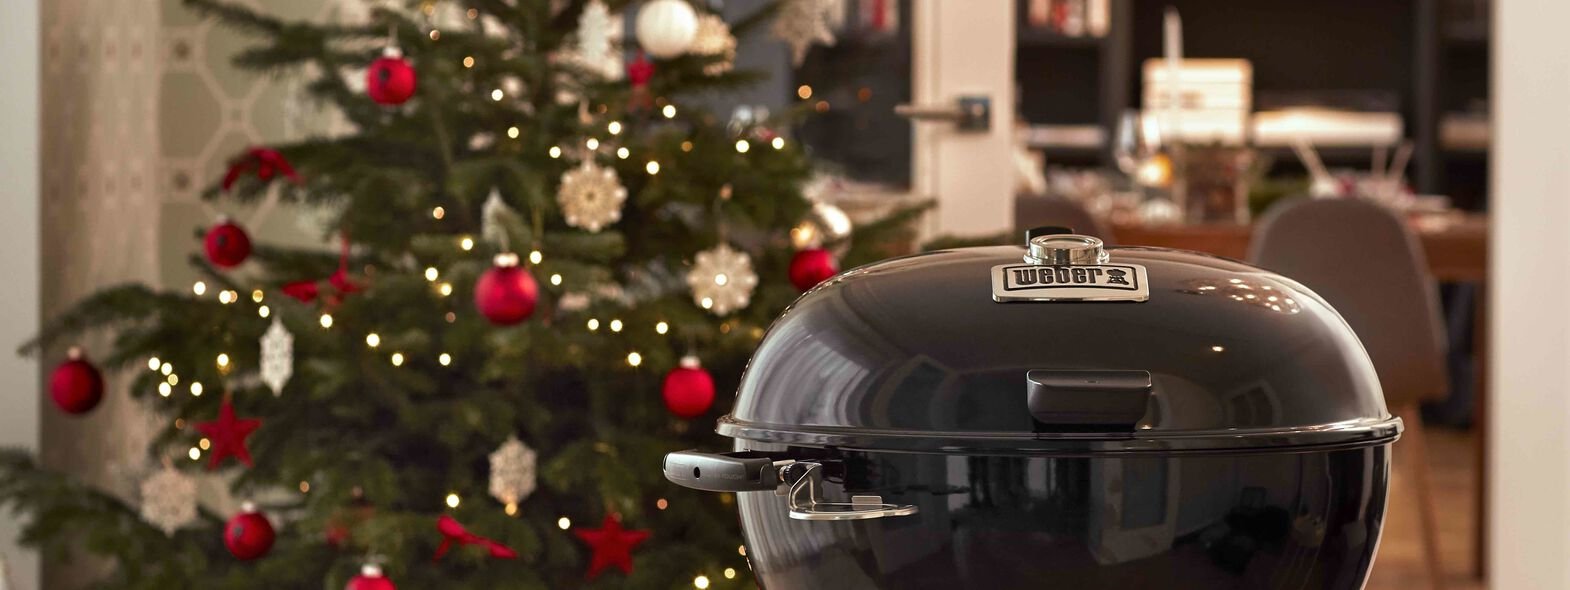 Weber BBQ Nights - Merry Grilling